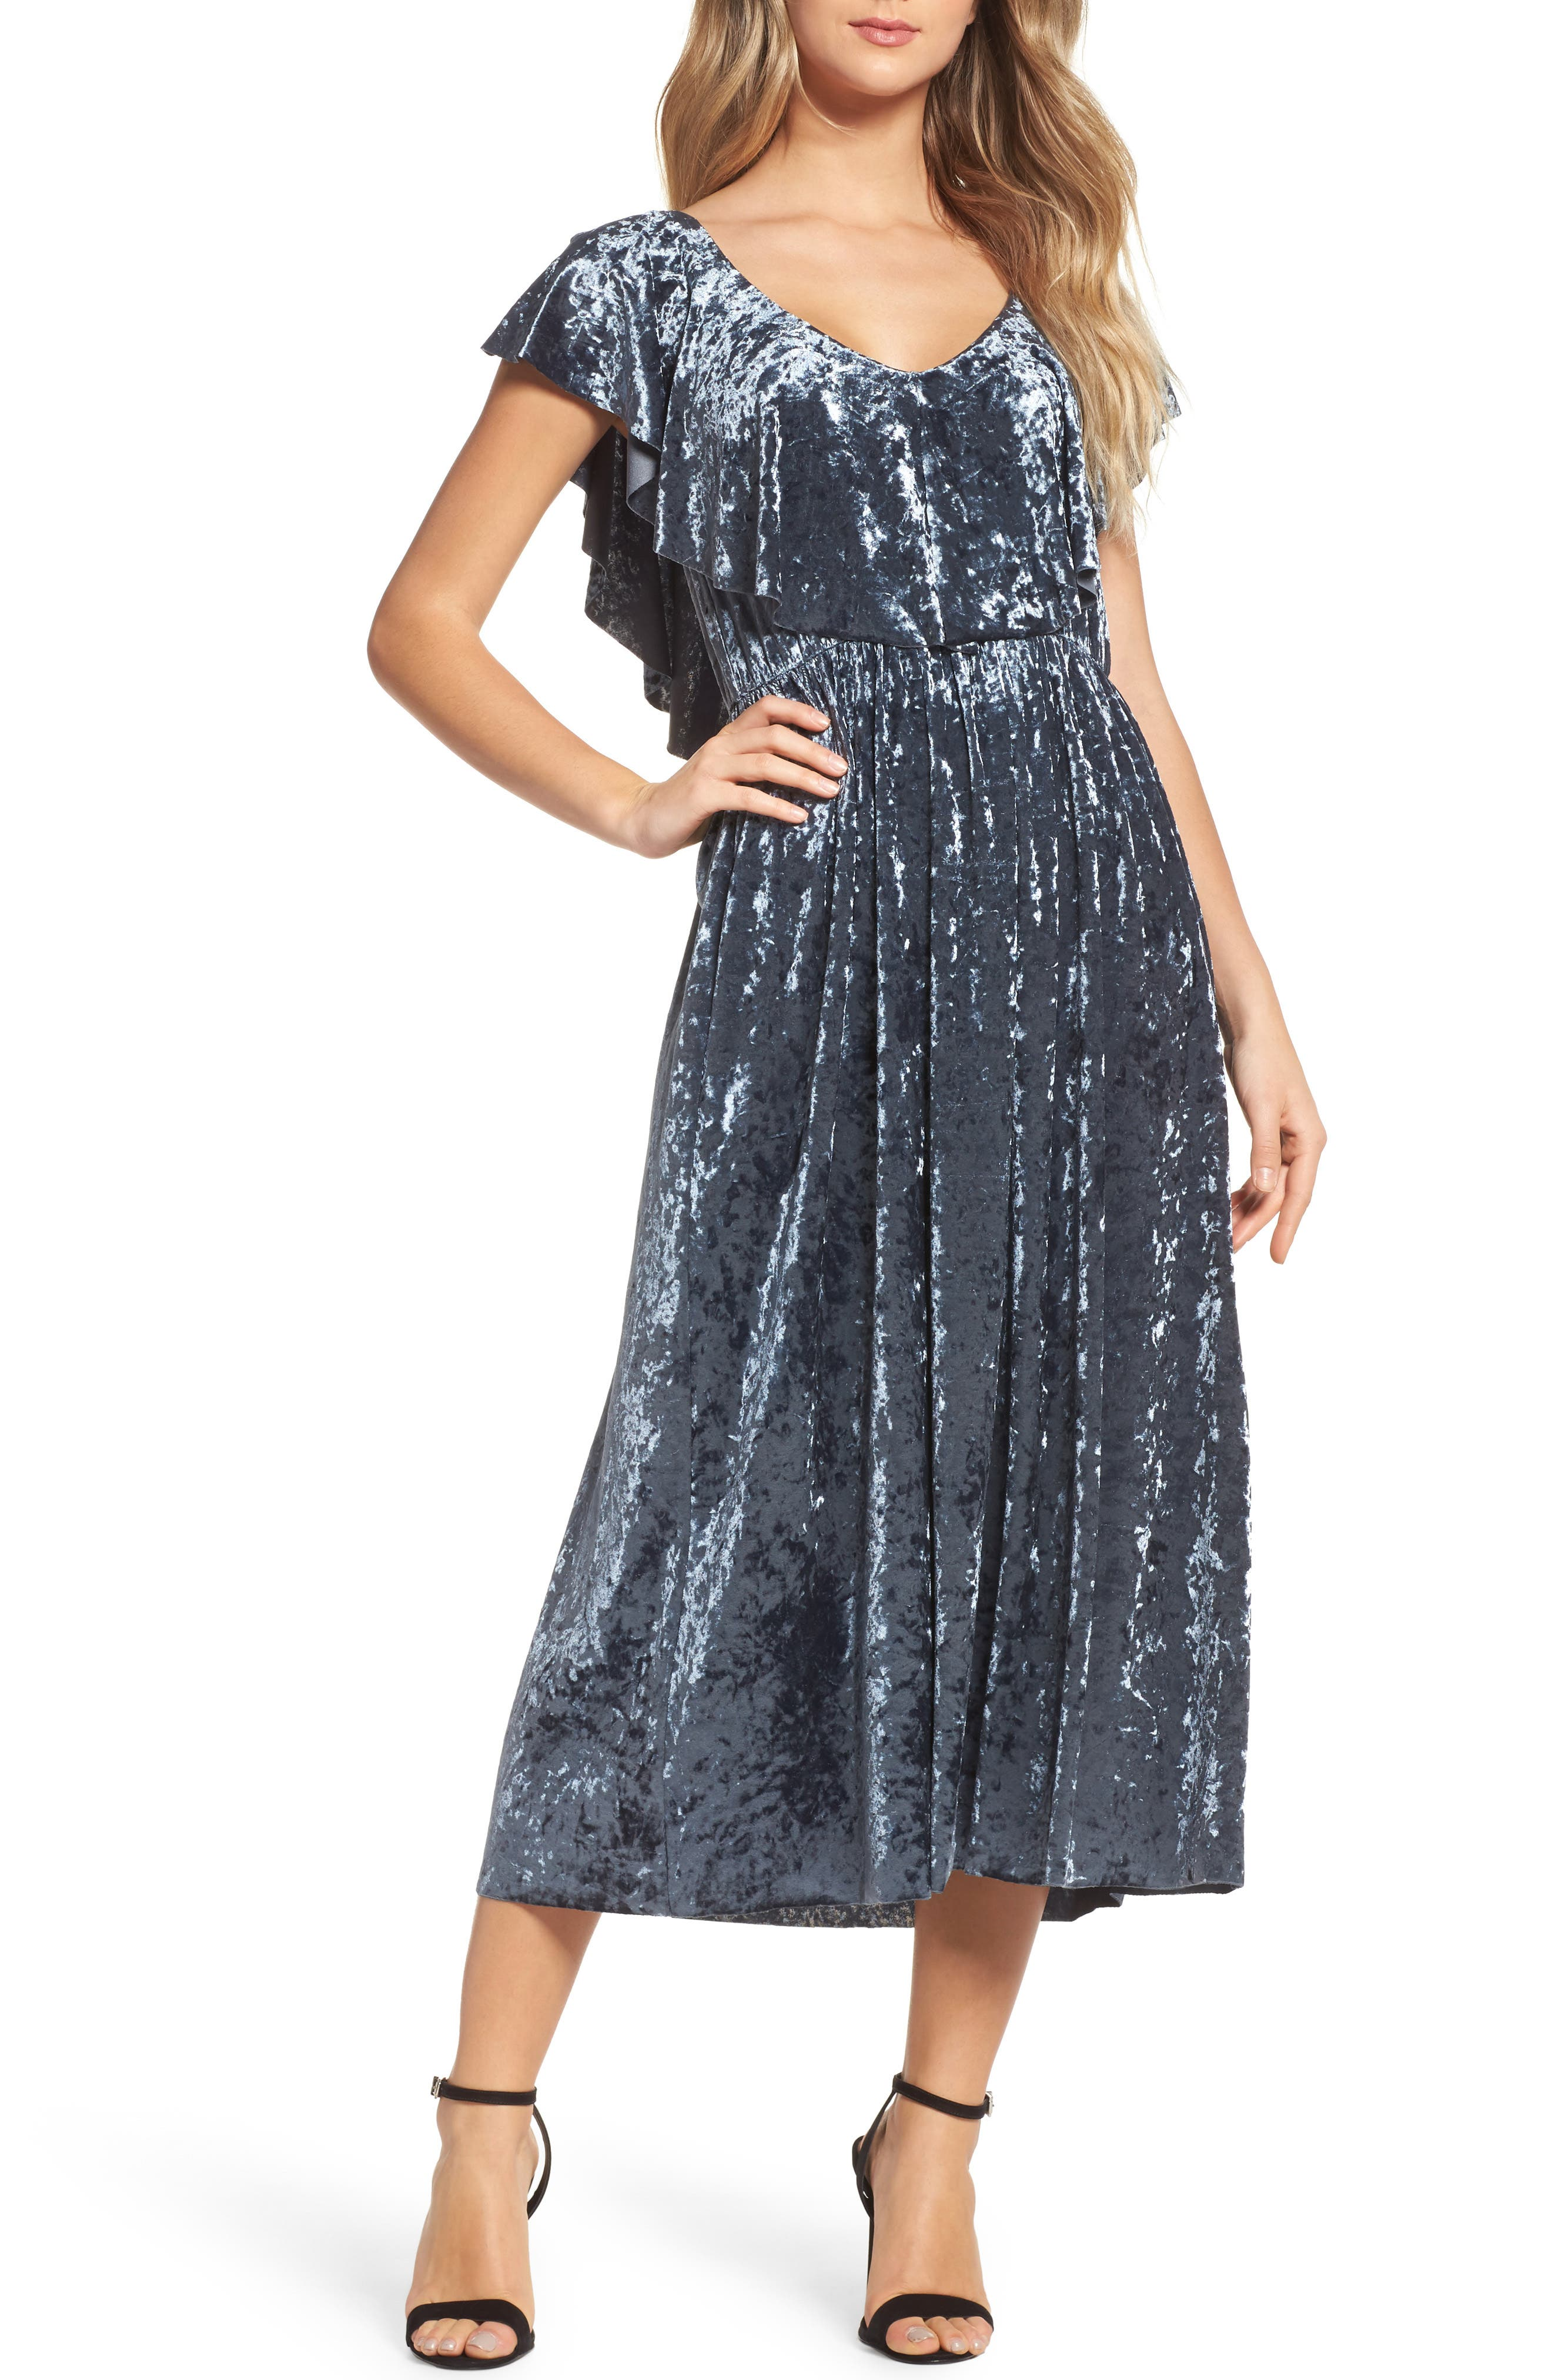 NSR Crushed Velvet Midi Dress